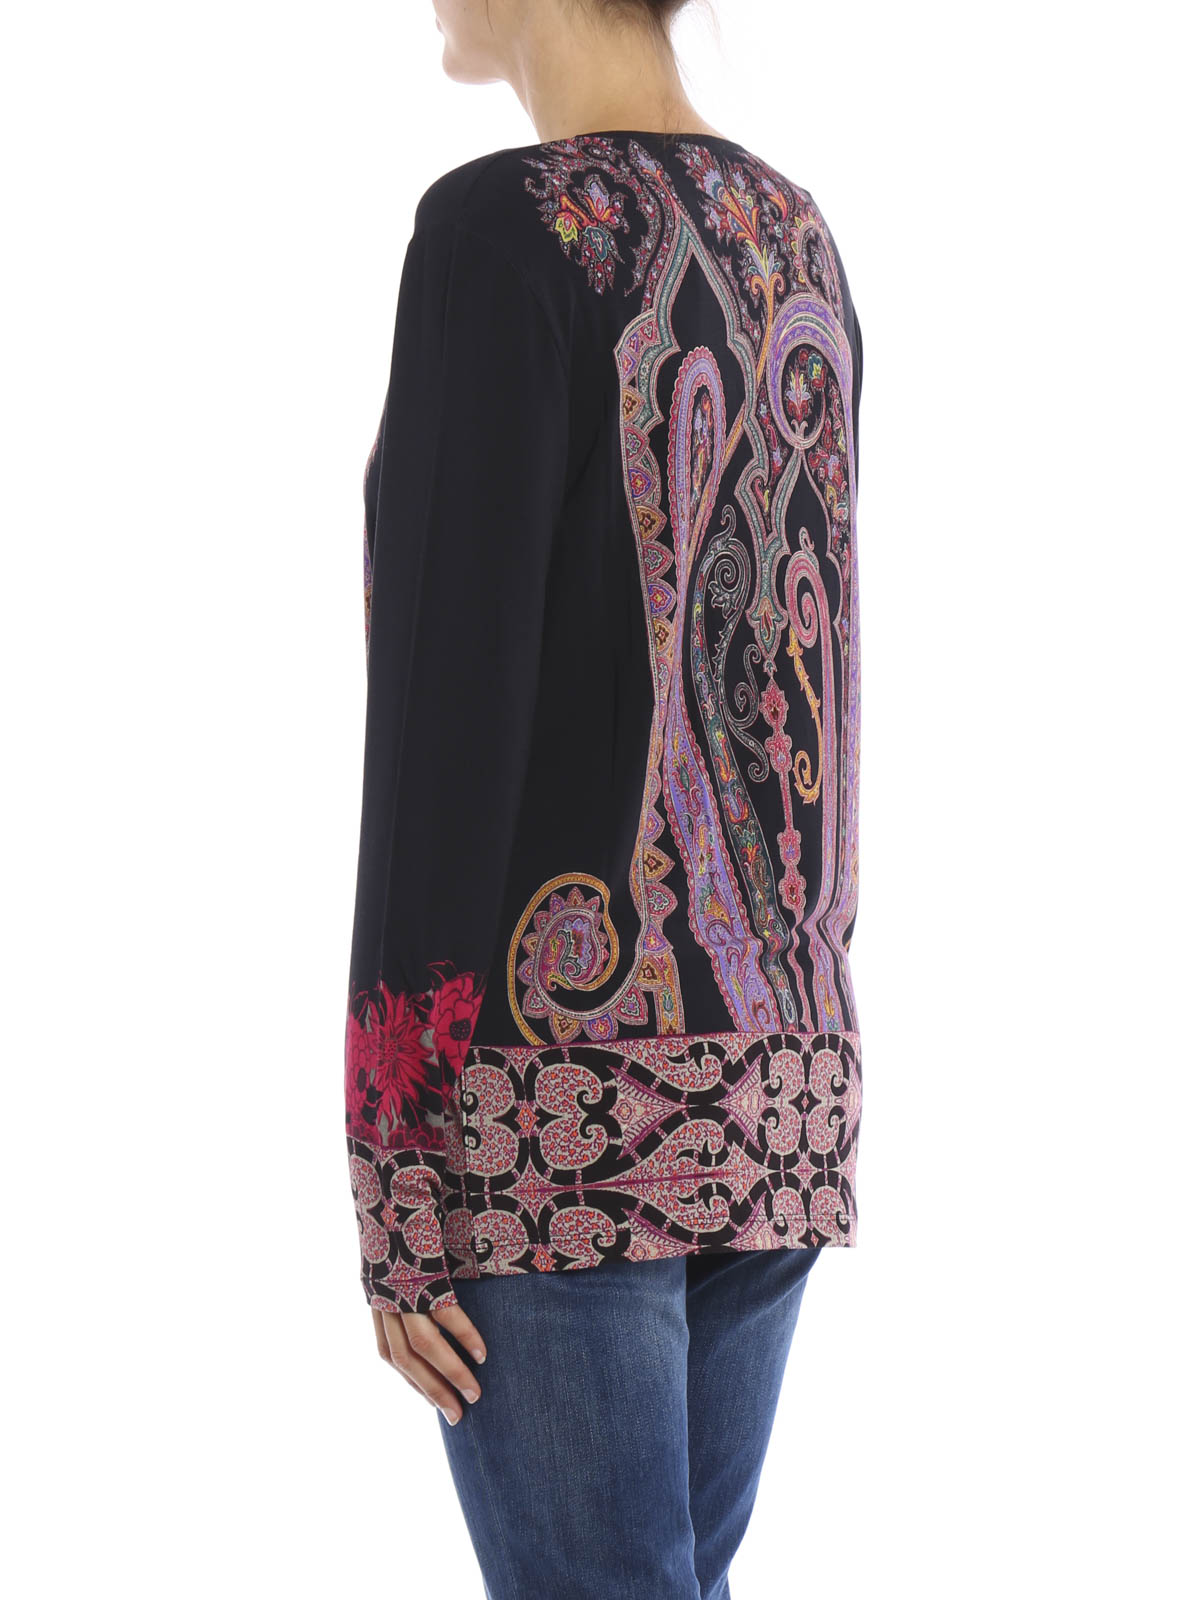 Long sleeves printed t shirt by etro t shirts ikrix for Long sleeve printed t shirts